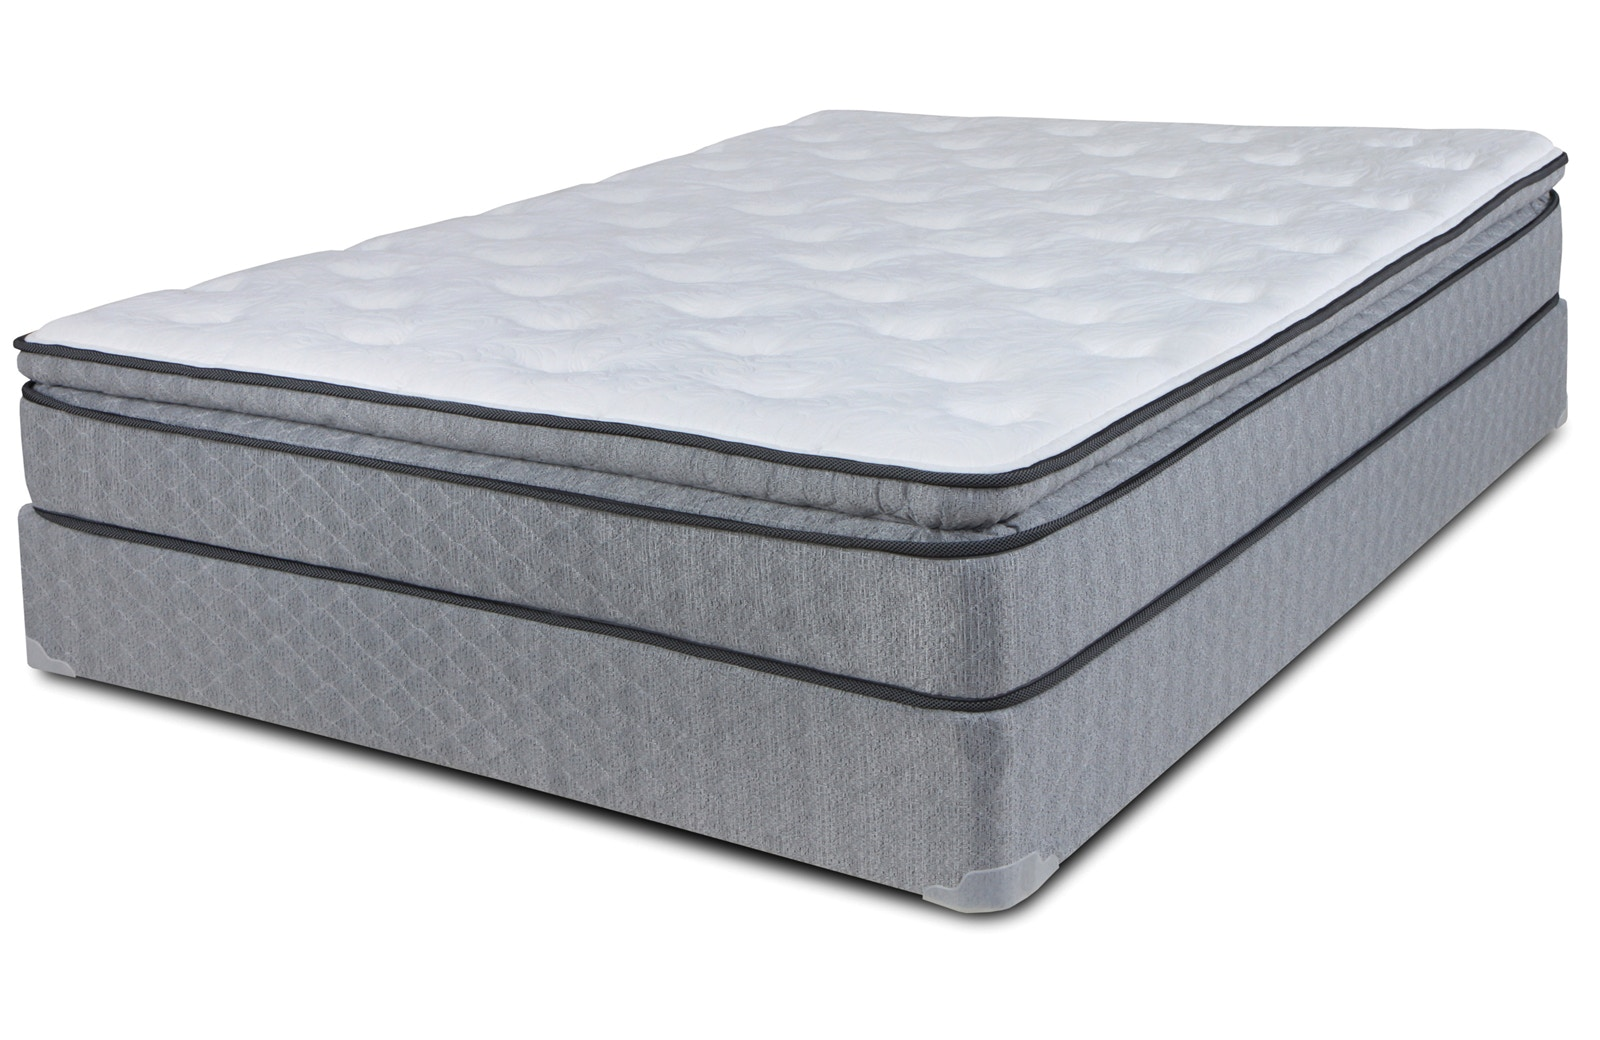 Cheap twin mattress sets iamerica alliance mattress set for Cheap bed sets with mattress